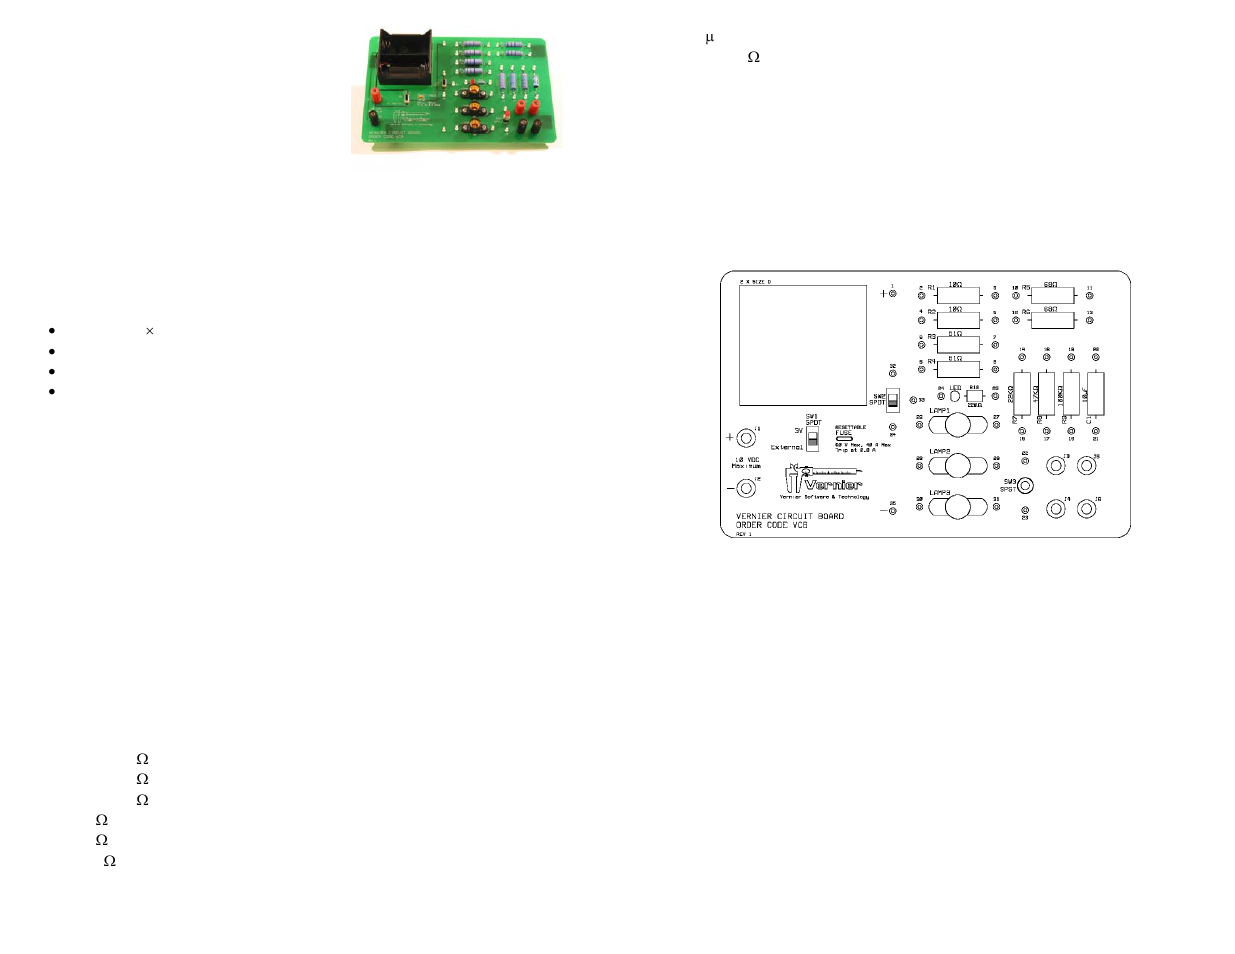 Vernier Circuit Board User Manual | 2 pages